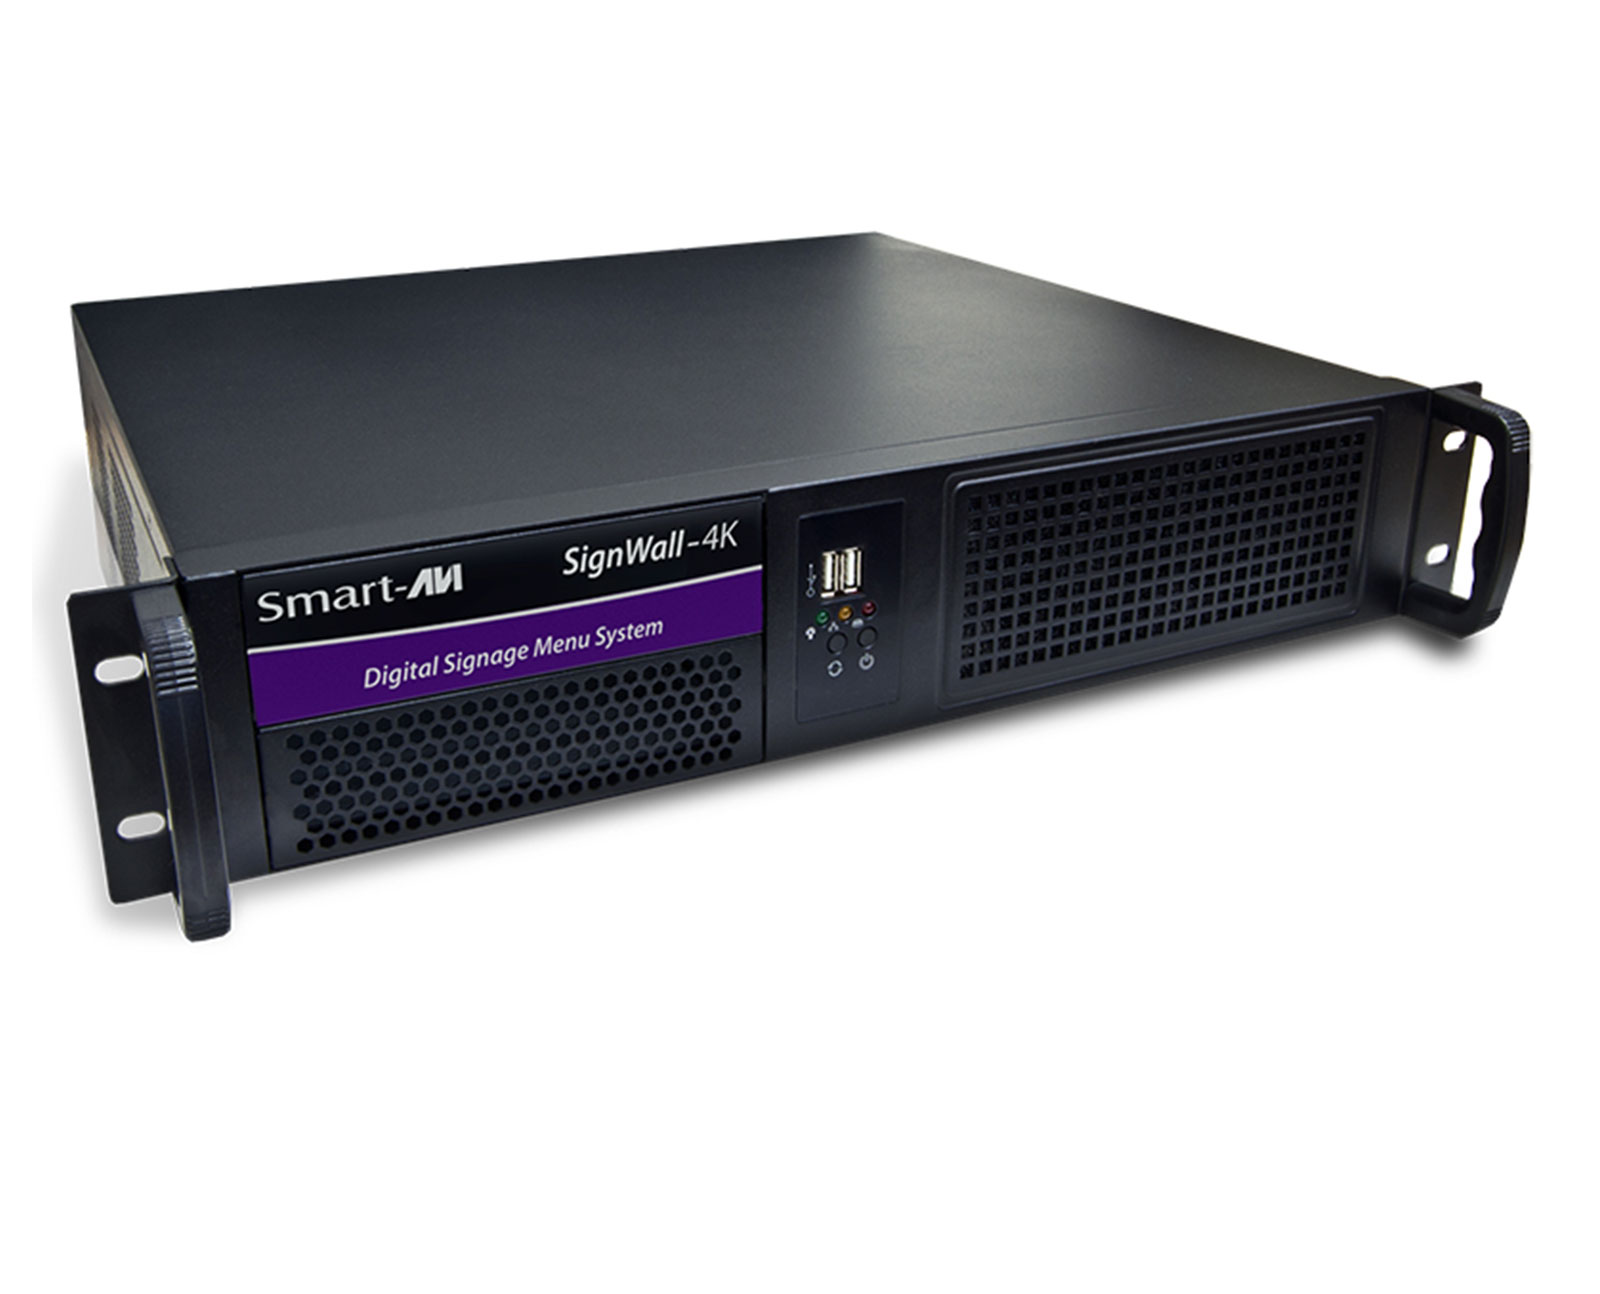 SmartAVI 4K-SVWP-120G7S SignWall-4K Video Wall, 1 capture card